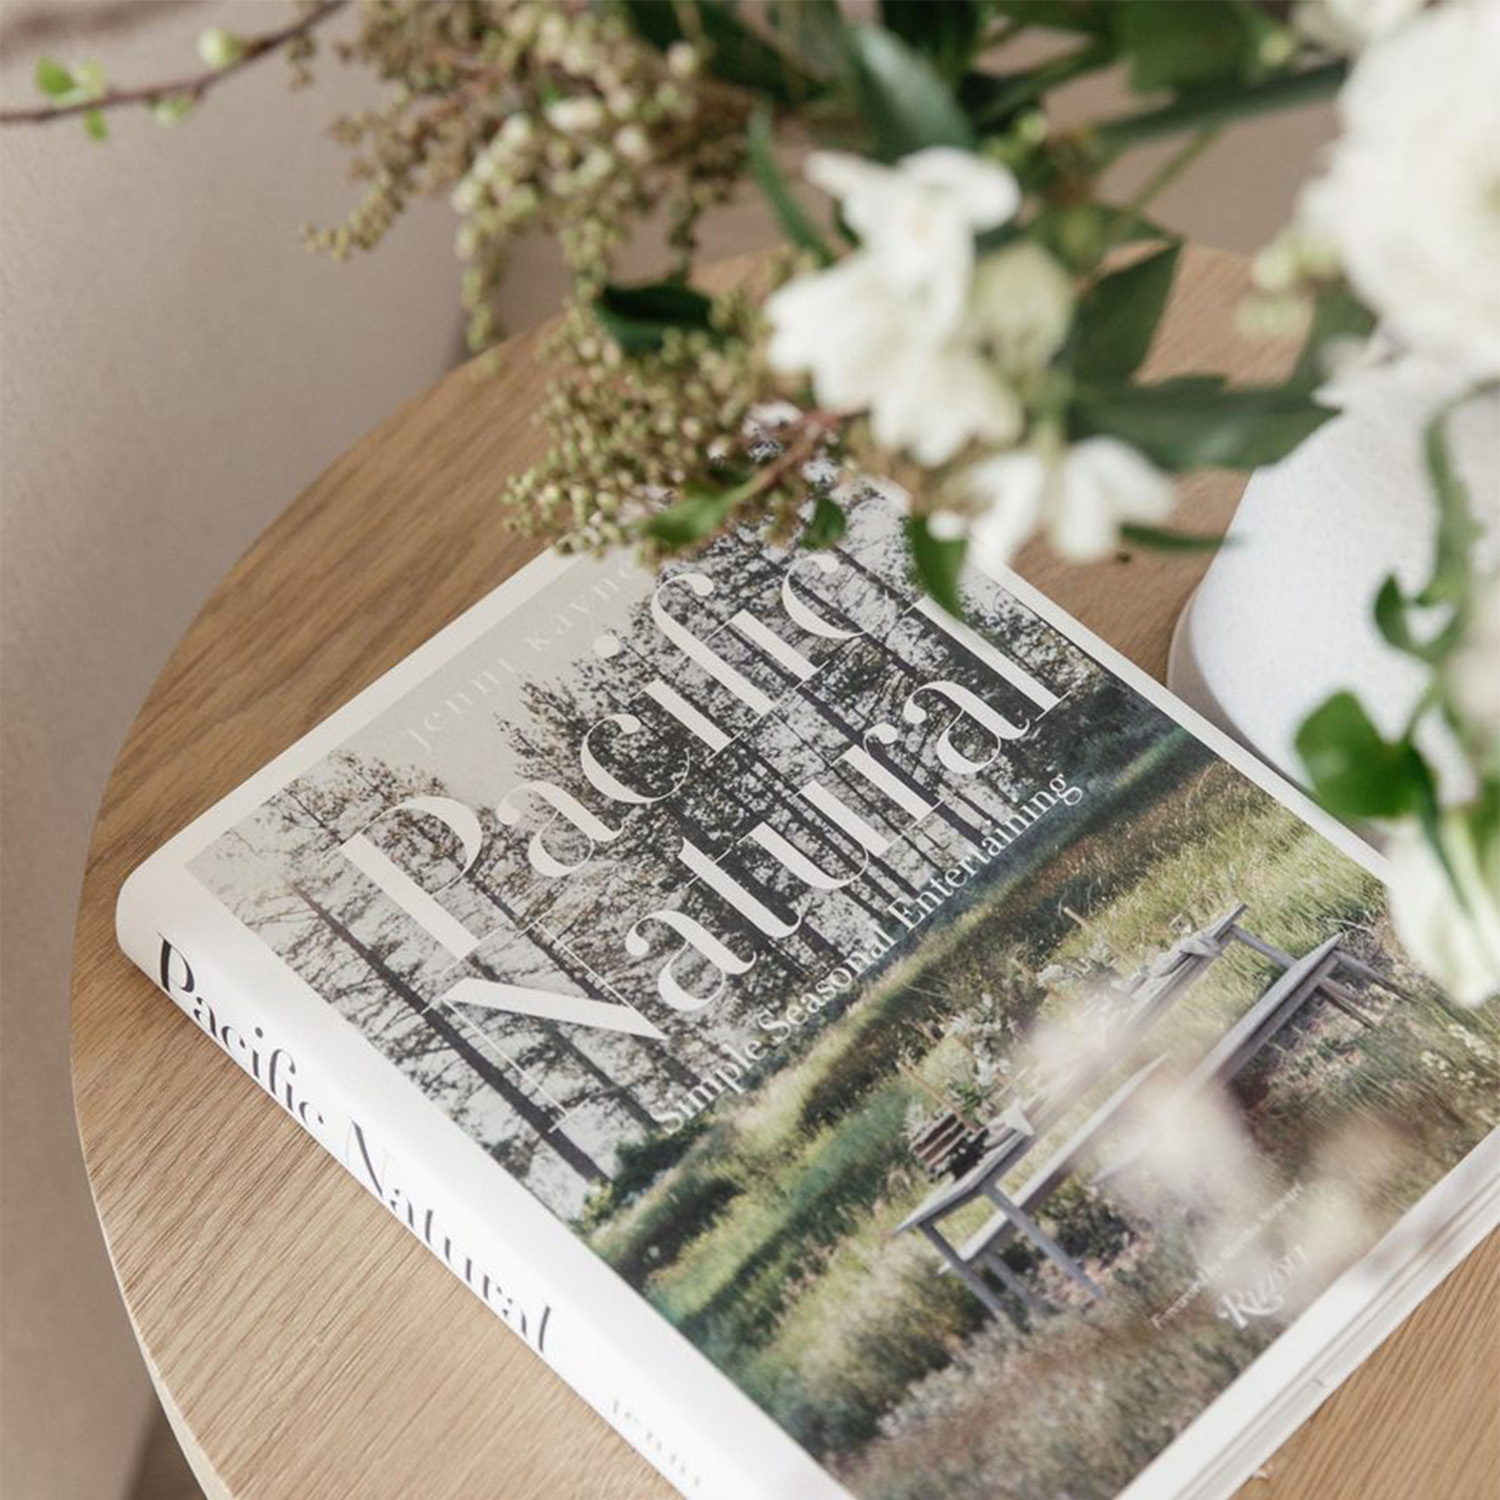 The Definitive Coffee Table Book Gift Guide for Every Friend on Your List | Hunker